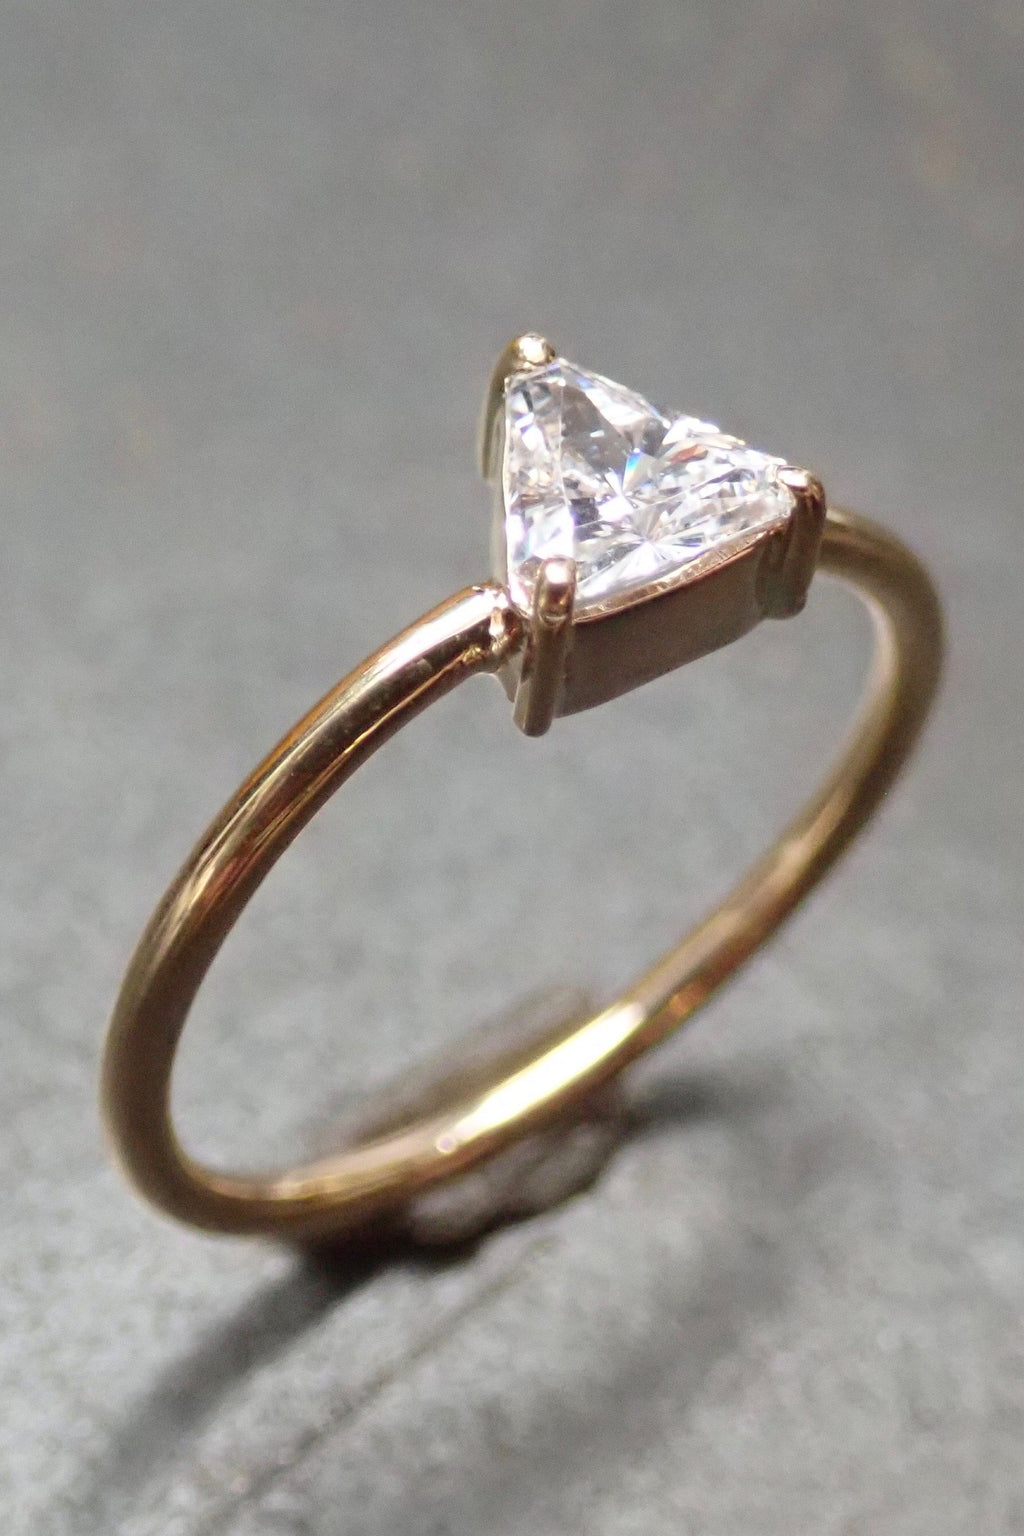 TRIANGLE SOLITARY DIAMOND RING